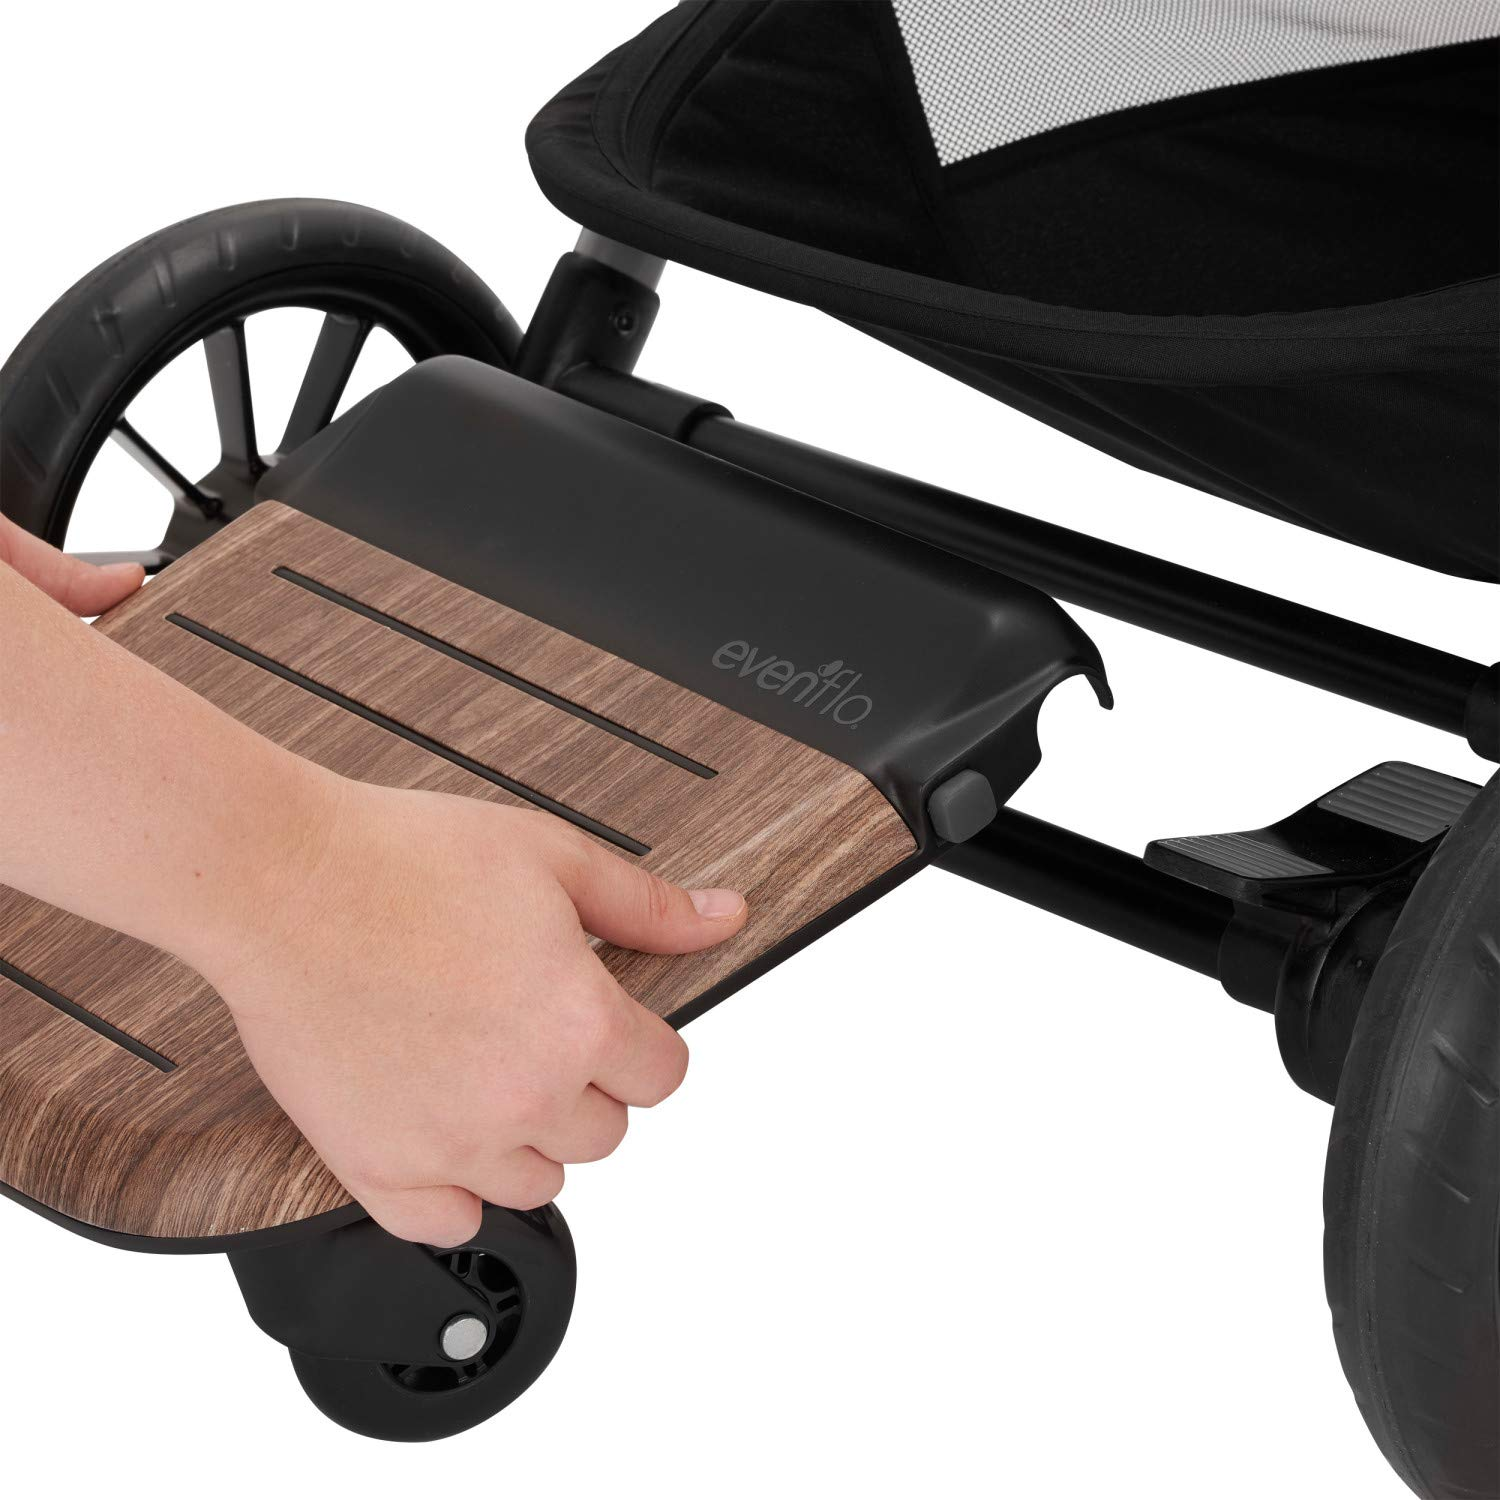 Evenflo Stroller Rider Board, Convenient Riding Options, Non-Skid Surface, Smooth-Ride Wheels, Easy to Use, Holds up to 50 Pounds, No Additional Parts Needed by Evenflo (Image #2)